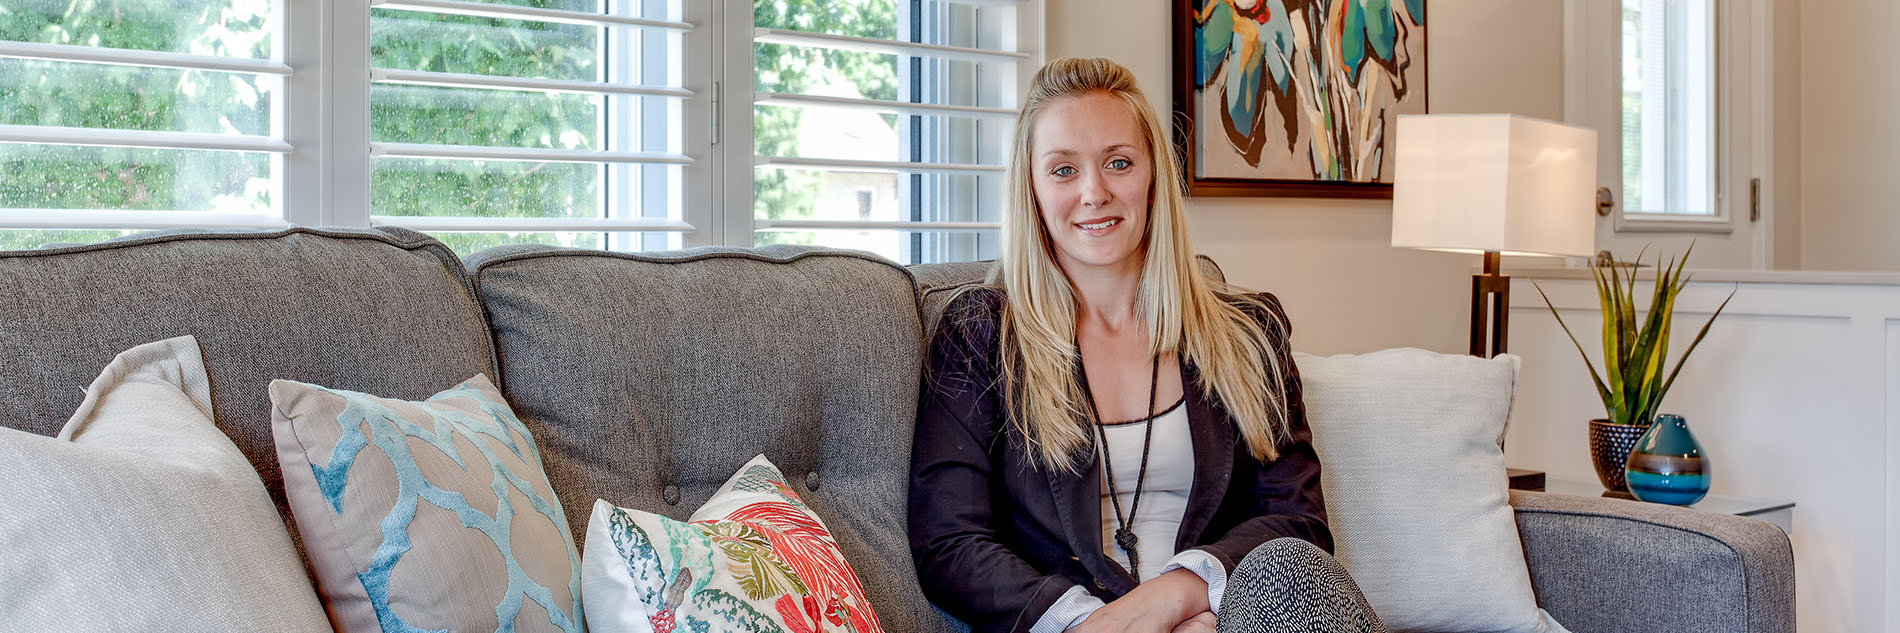 woman on couch centre staged home